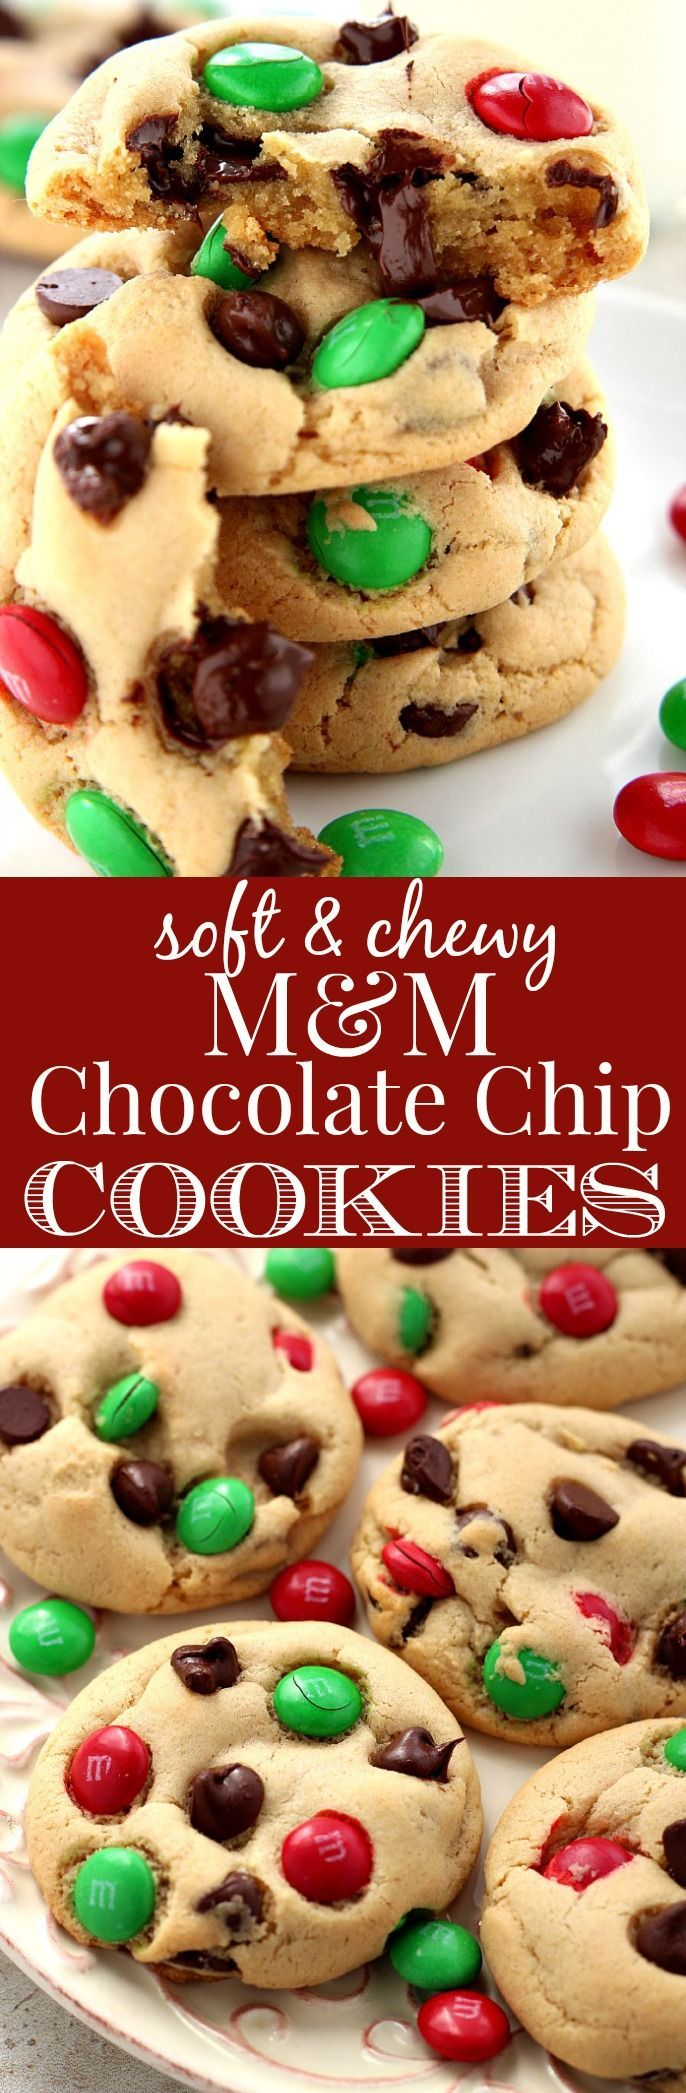 mmscookies long Soft and Chewy M&M Chocolate Chip Cookies